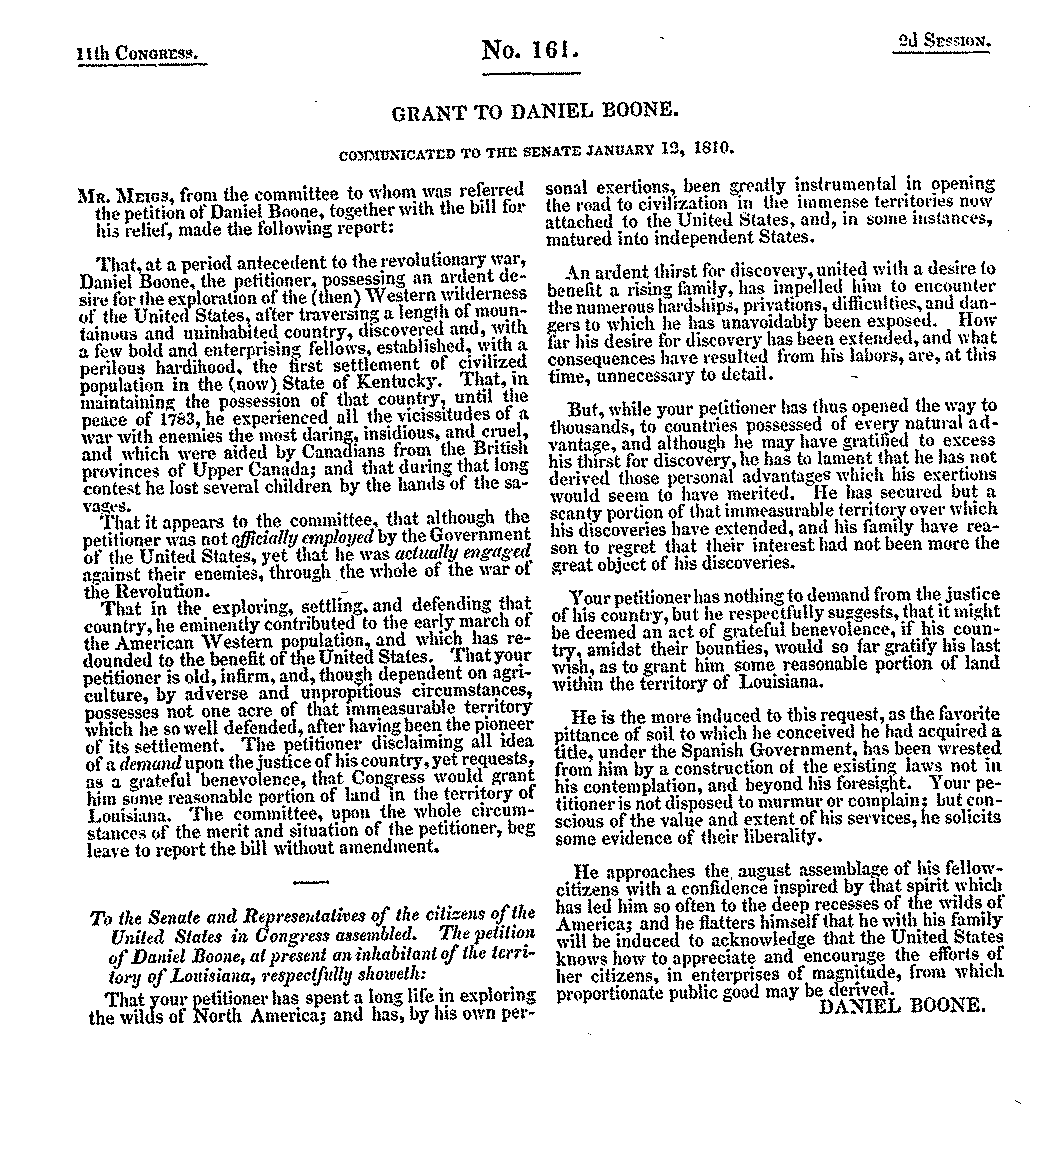 Scanned image of the petition of Daniel Boone